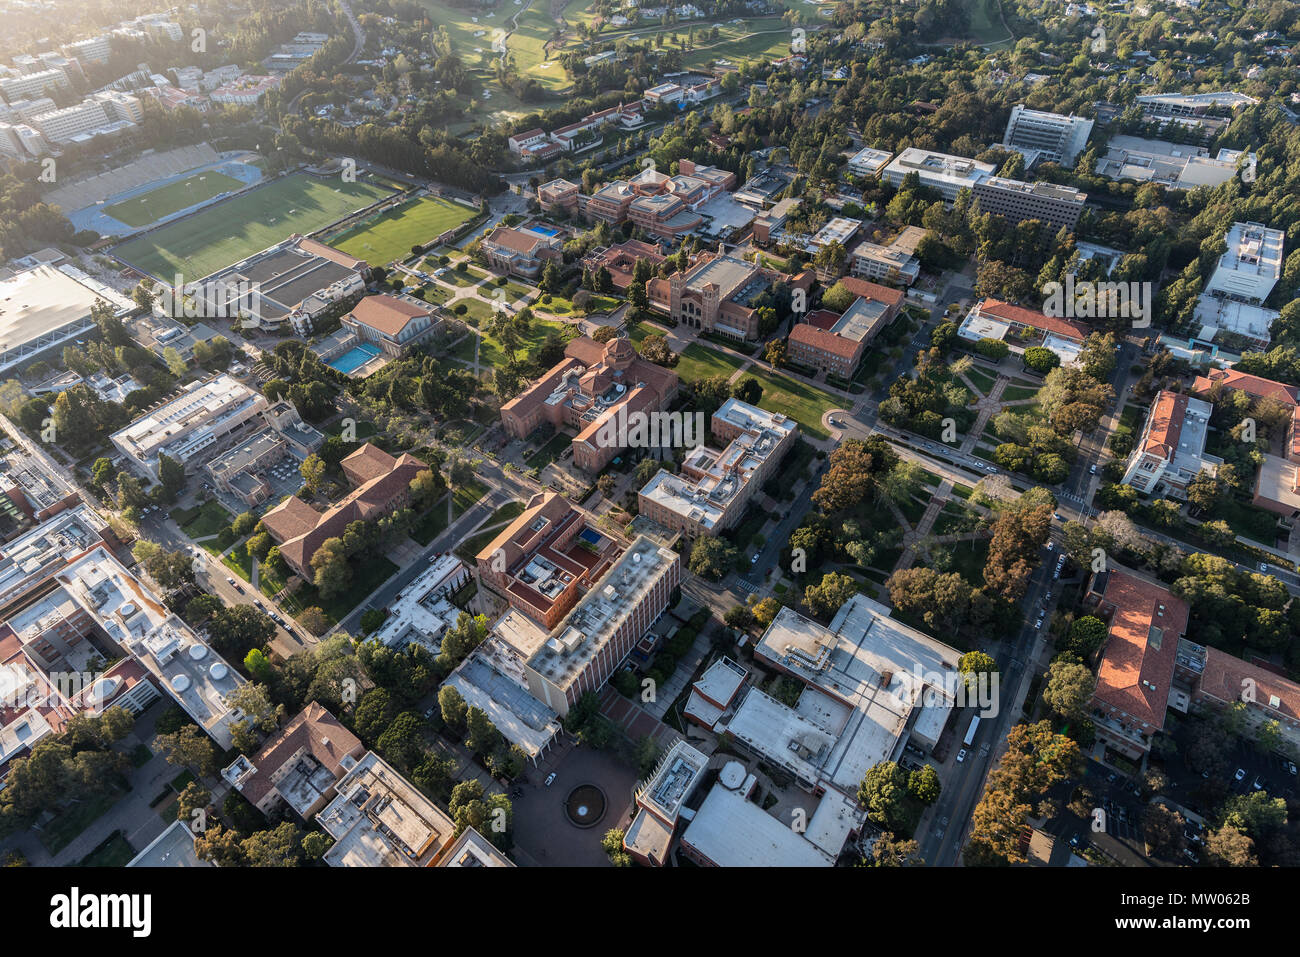 Los Angeles, California, USA - April 18, 2018:  Aerial overview of historic architecture on the UCLA campus near Westwood. - Stock Image